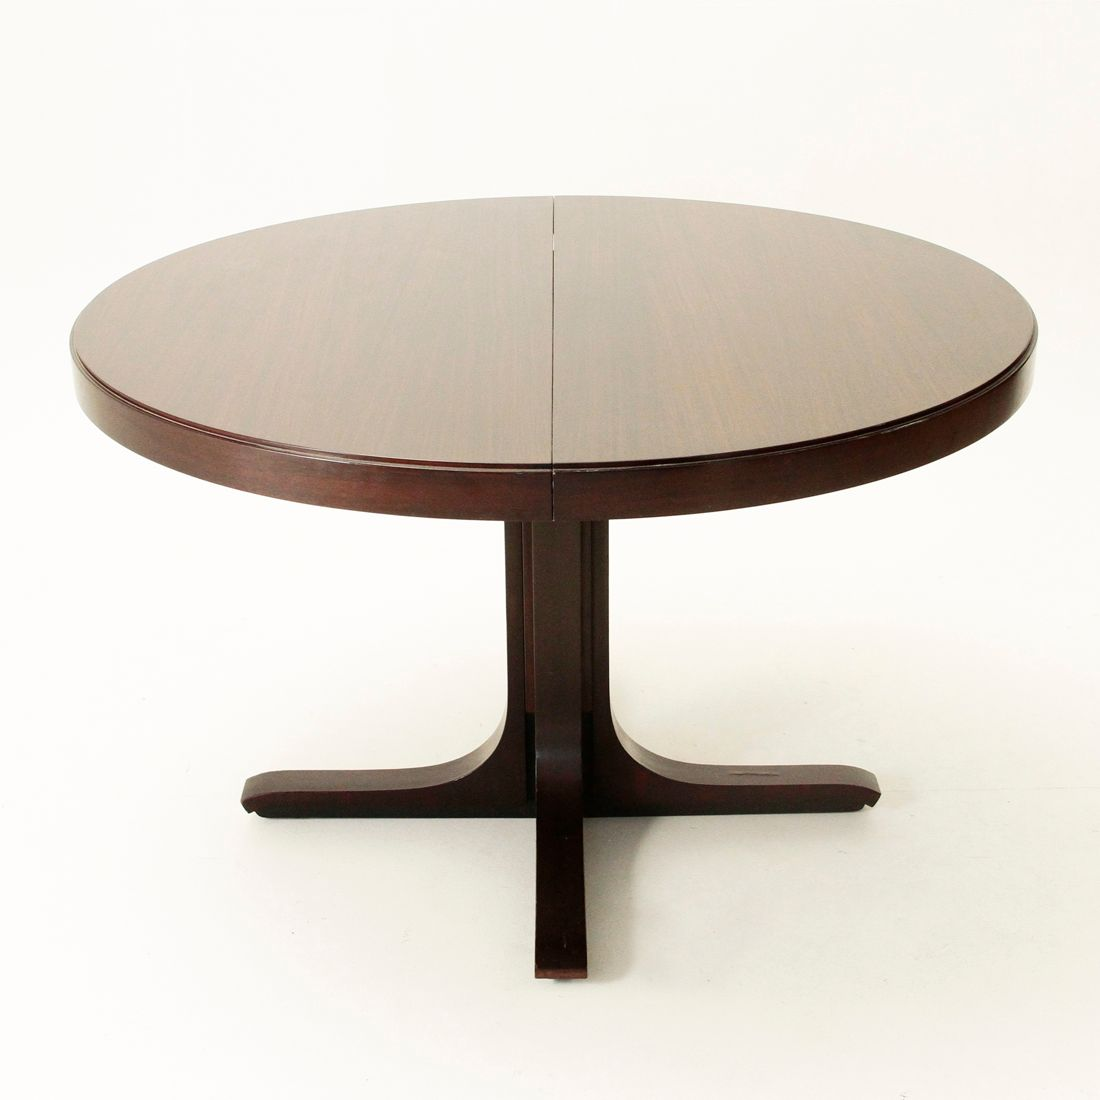 Extensible dining table by giovanni ausenda for stilwood for Table extensible tournante